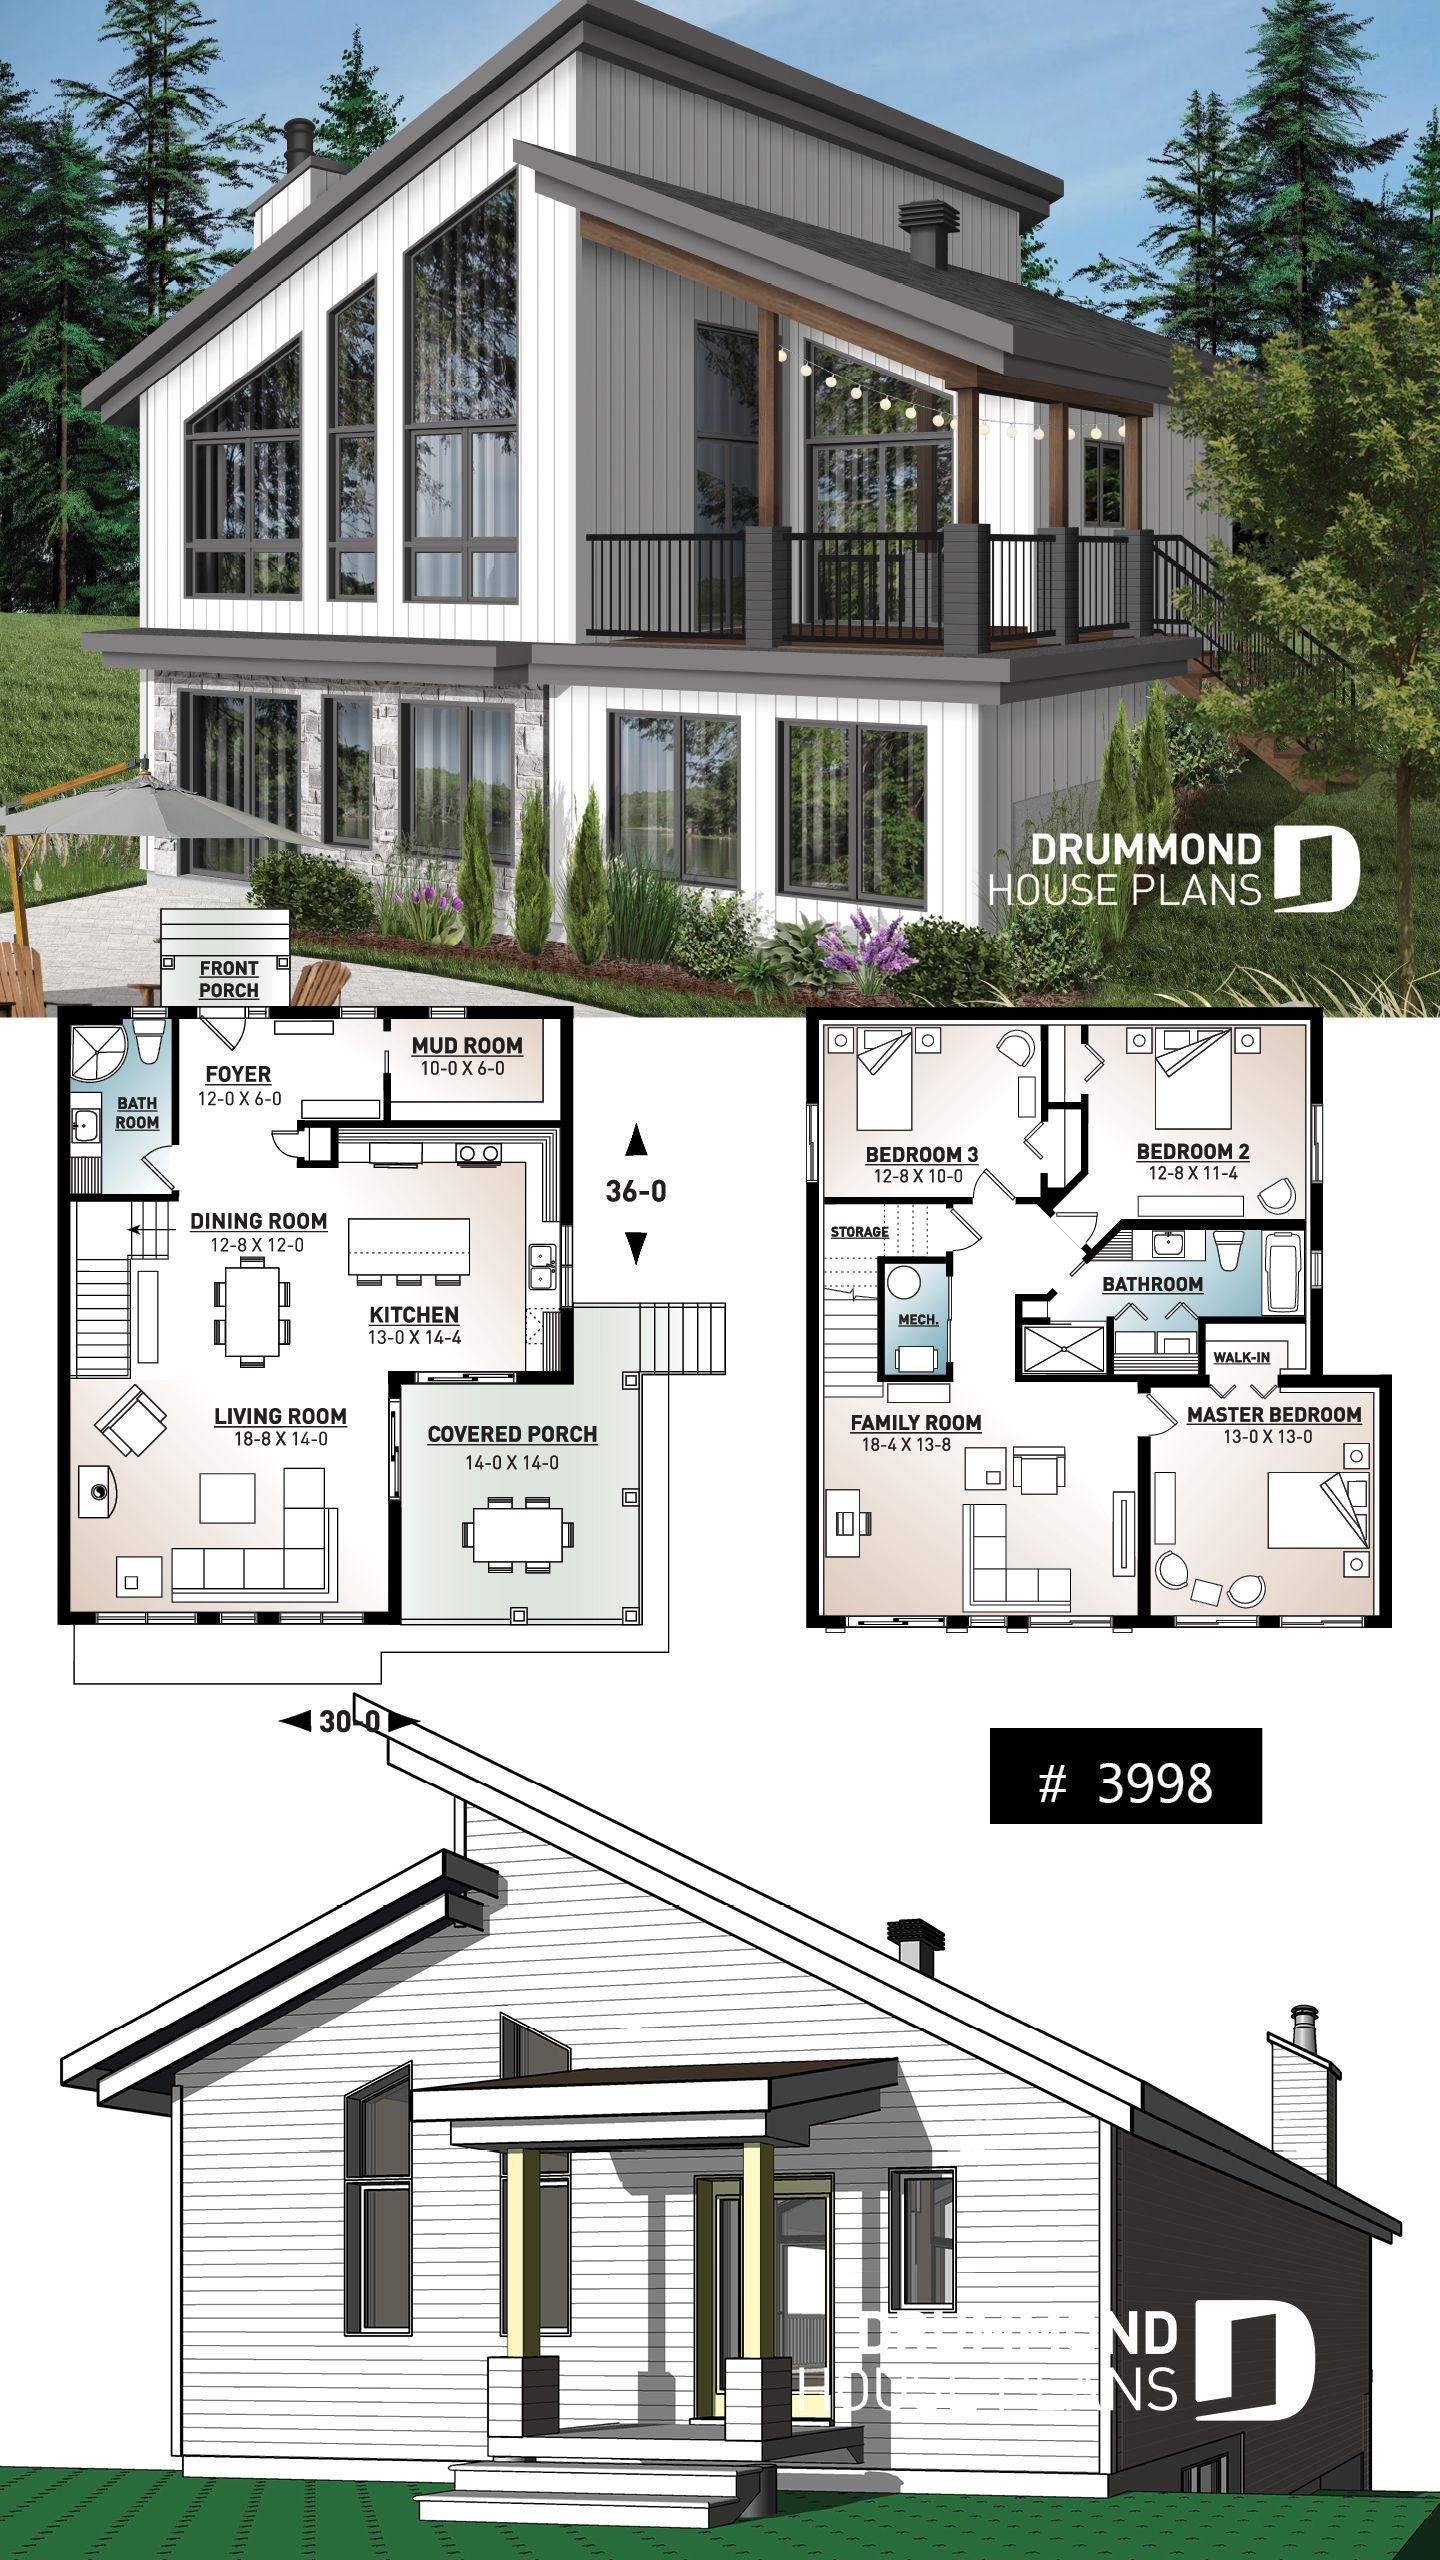 Ski chalet house plan  inverted living and panoramic view Ski or mountain cottage plan with walkout basement large covered deck 3 beds 2 bathrooms open concept